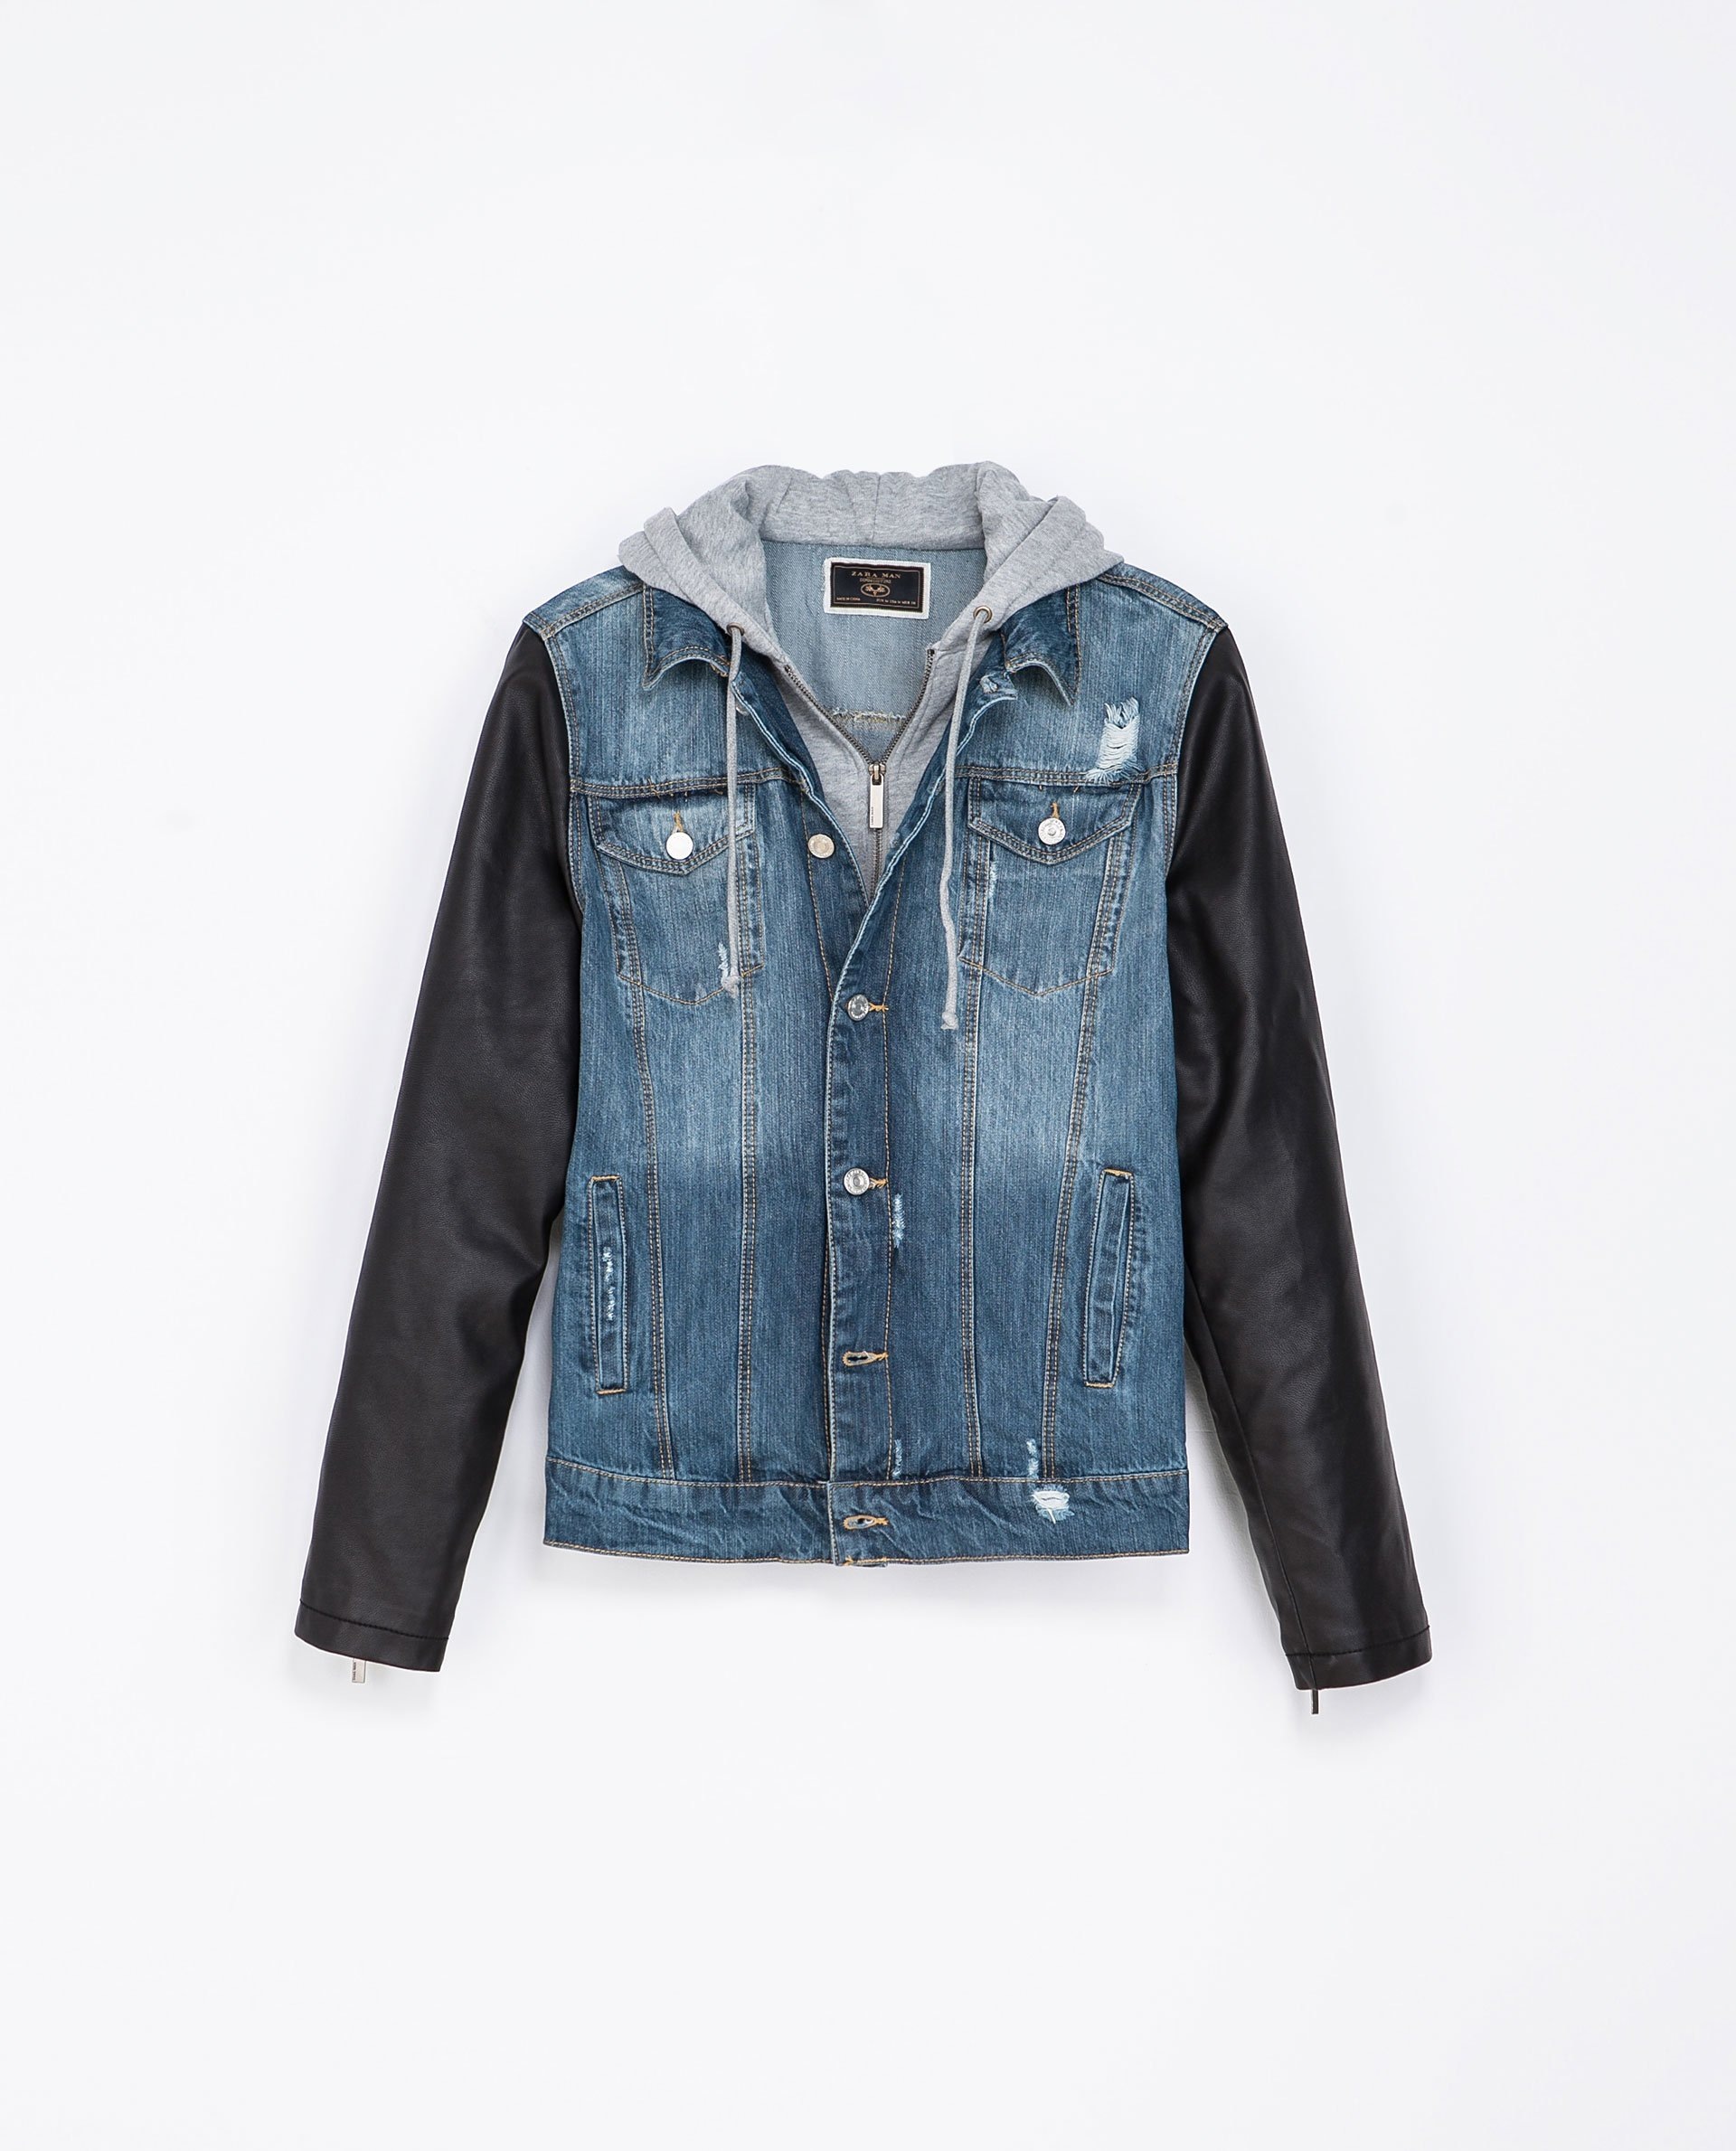 A combo of vintage leather and well-worn denim meets up to build the Leather Sleeve Slim Fit Denim Jacket. For the most authentic, well-worn look, the leather is washed and waxed while the denim is overdyed and stonewashed.